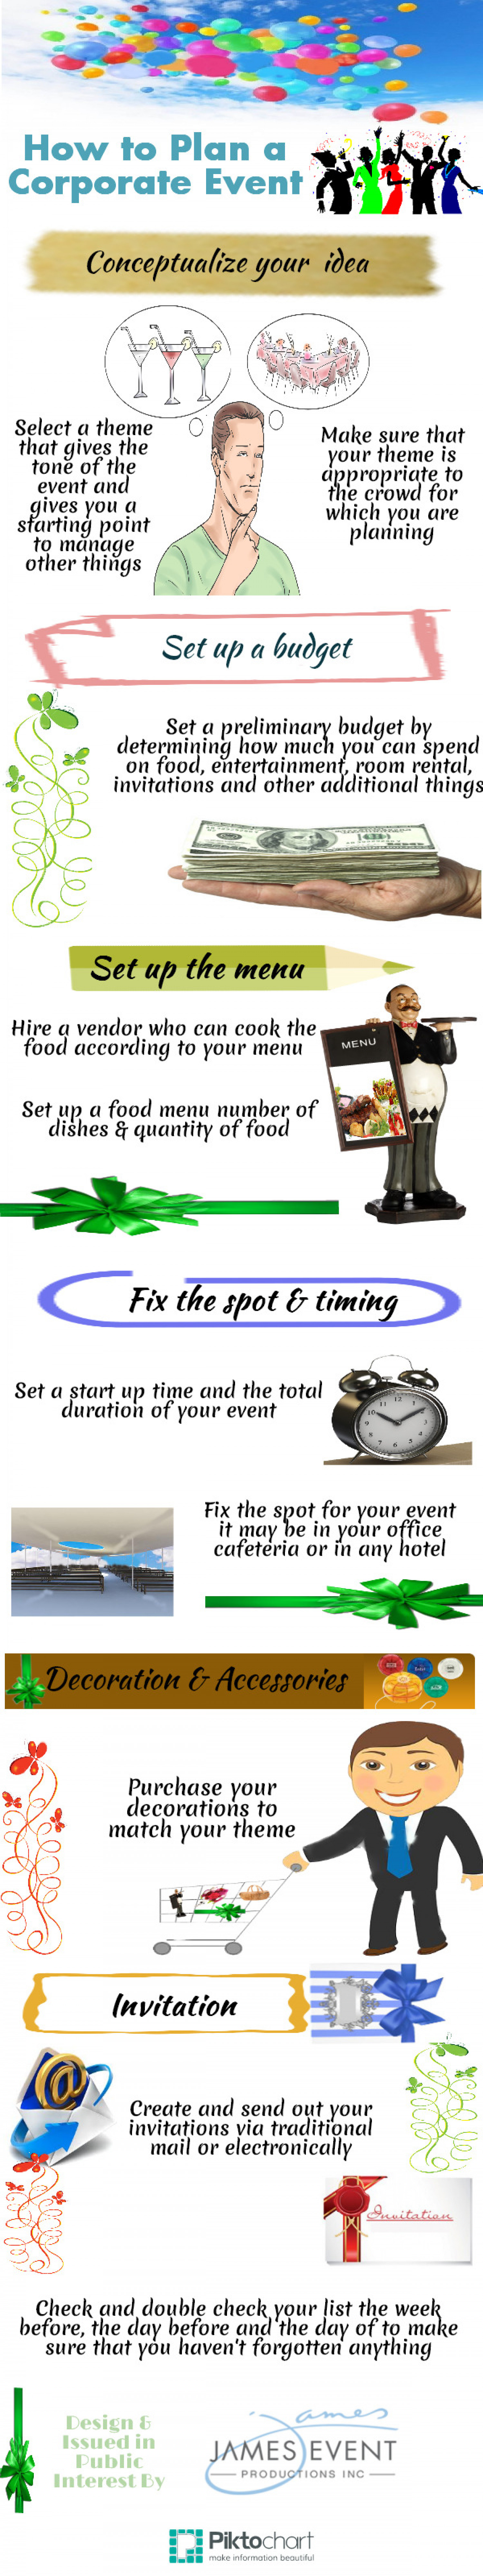 How to Plan a Corporate Event Infographic